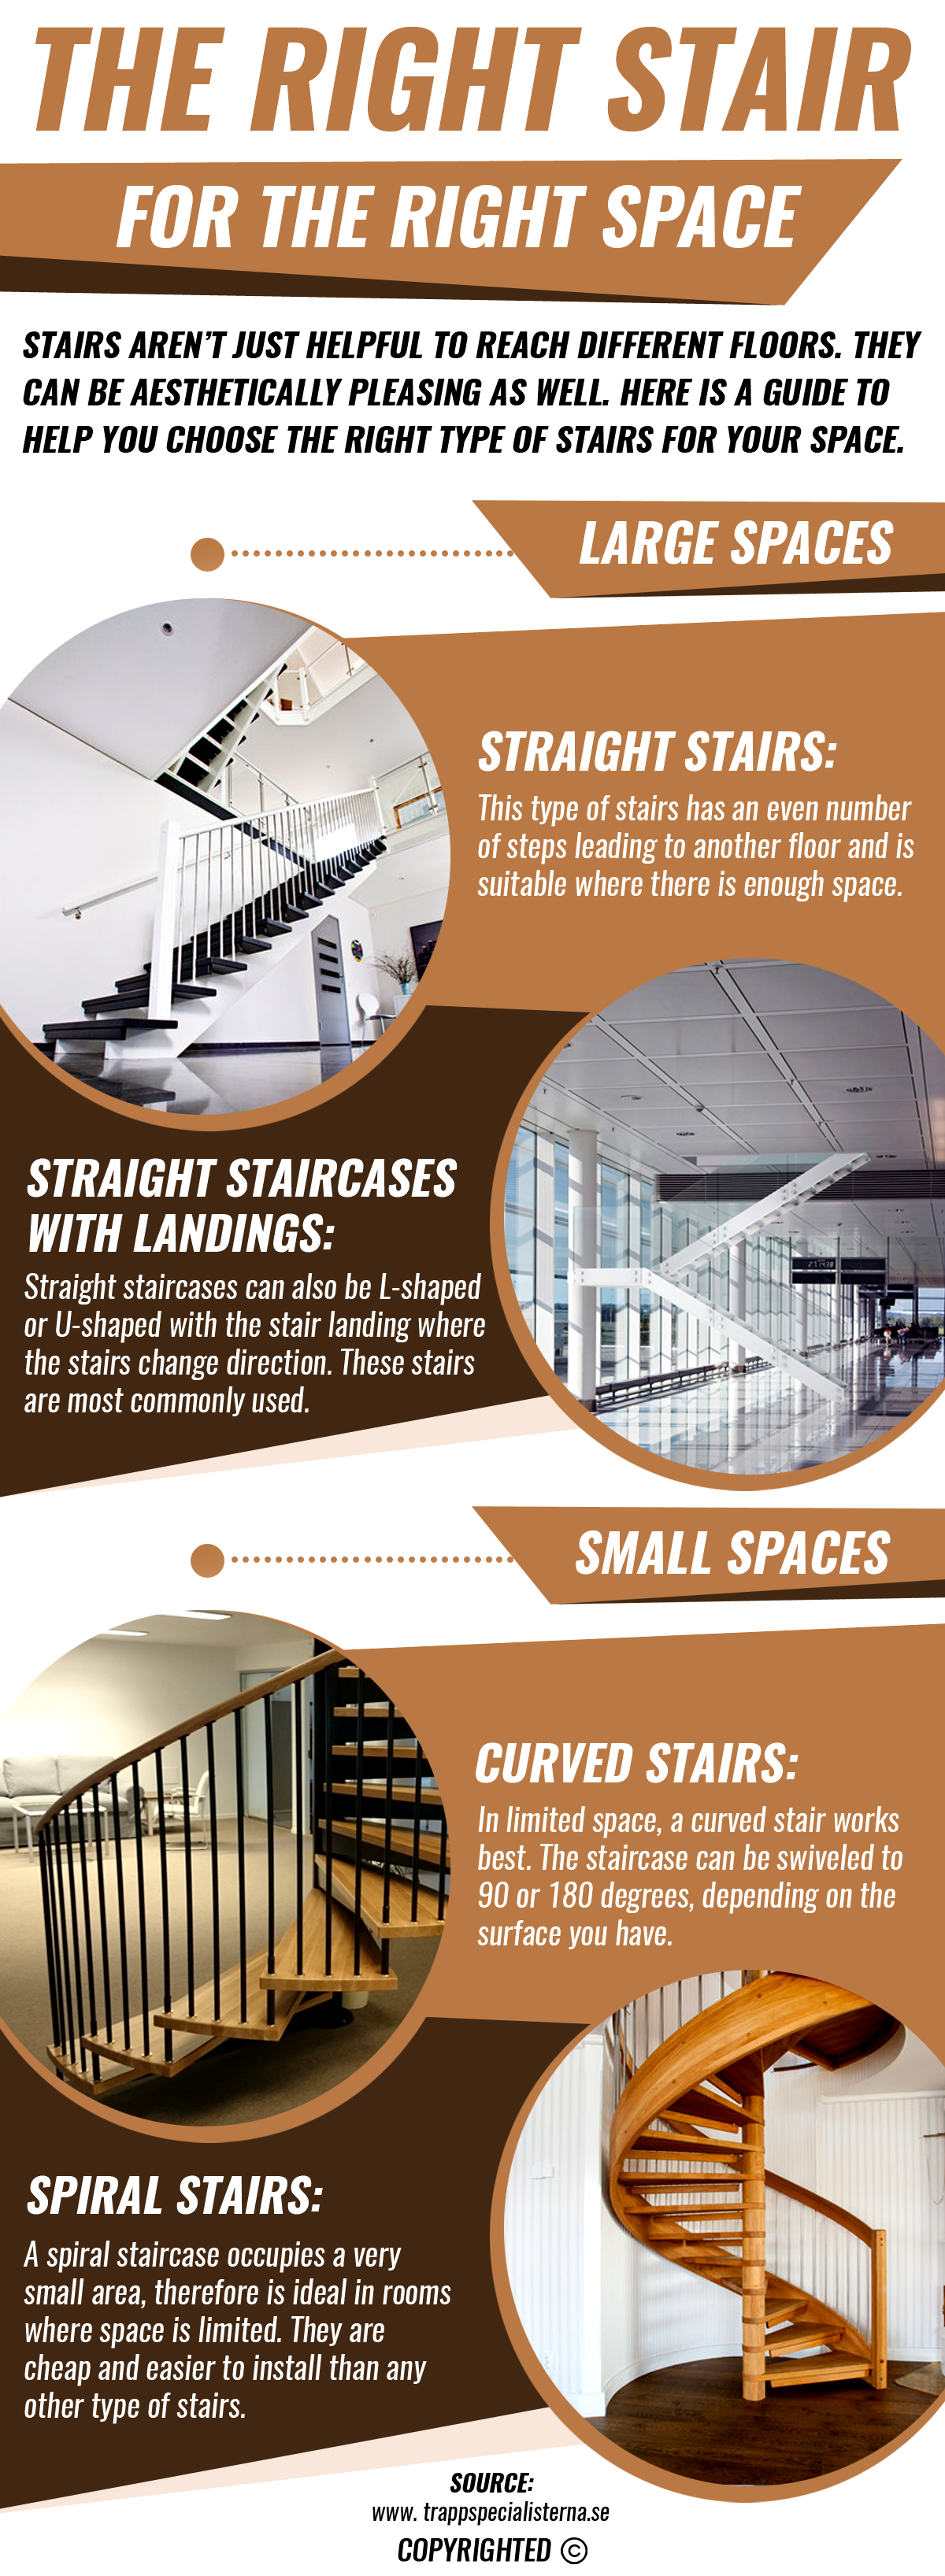 How to choose a staircase according to the space available